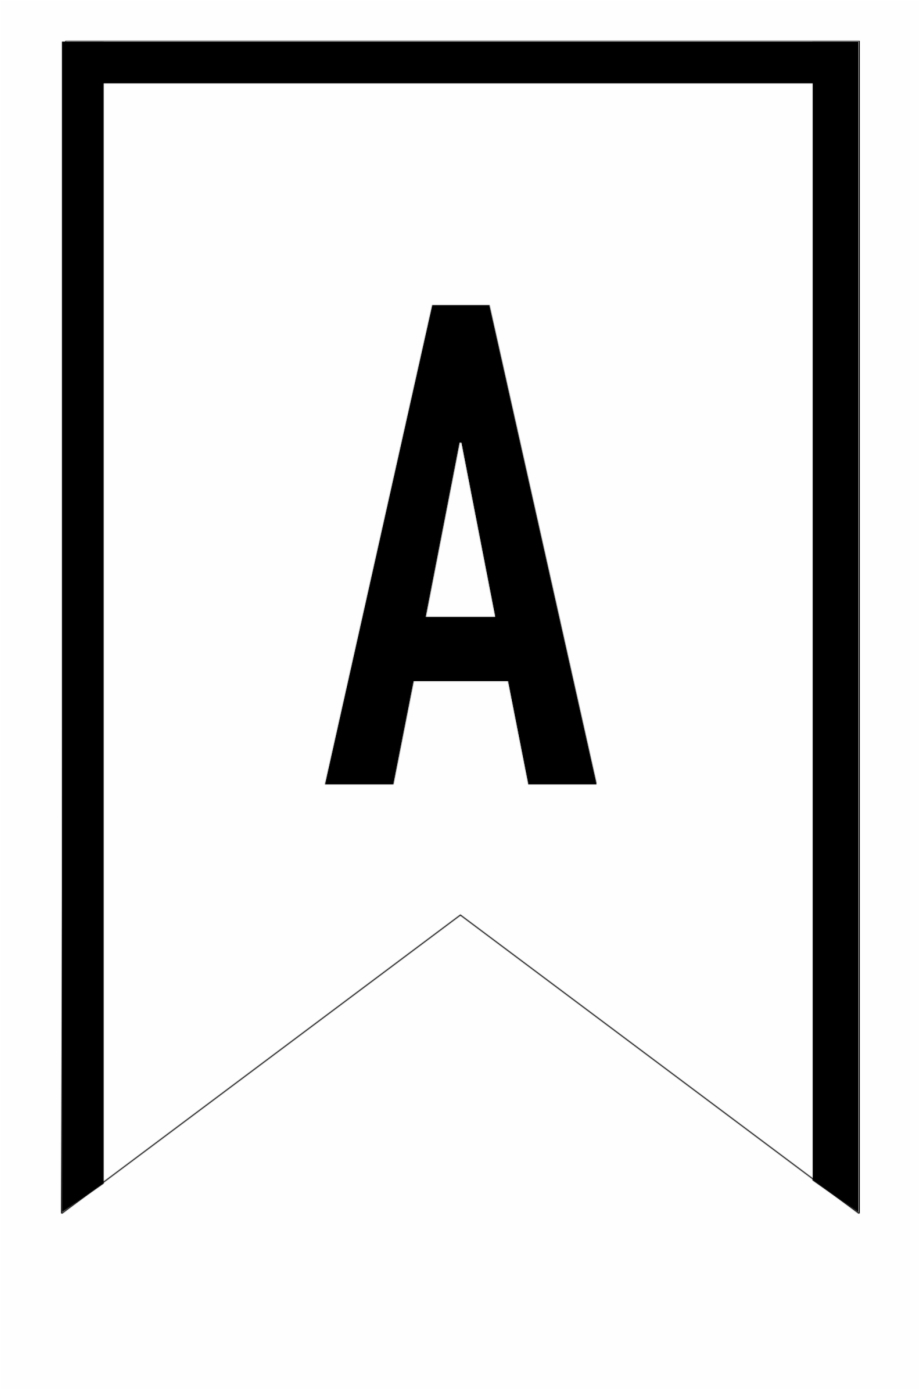 Banner Templates Free Printable Abc Letters - Printable For Letter Templates For Banners